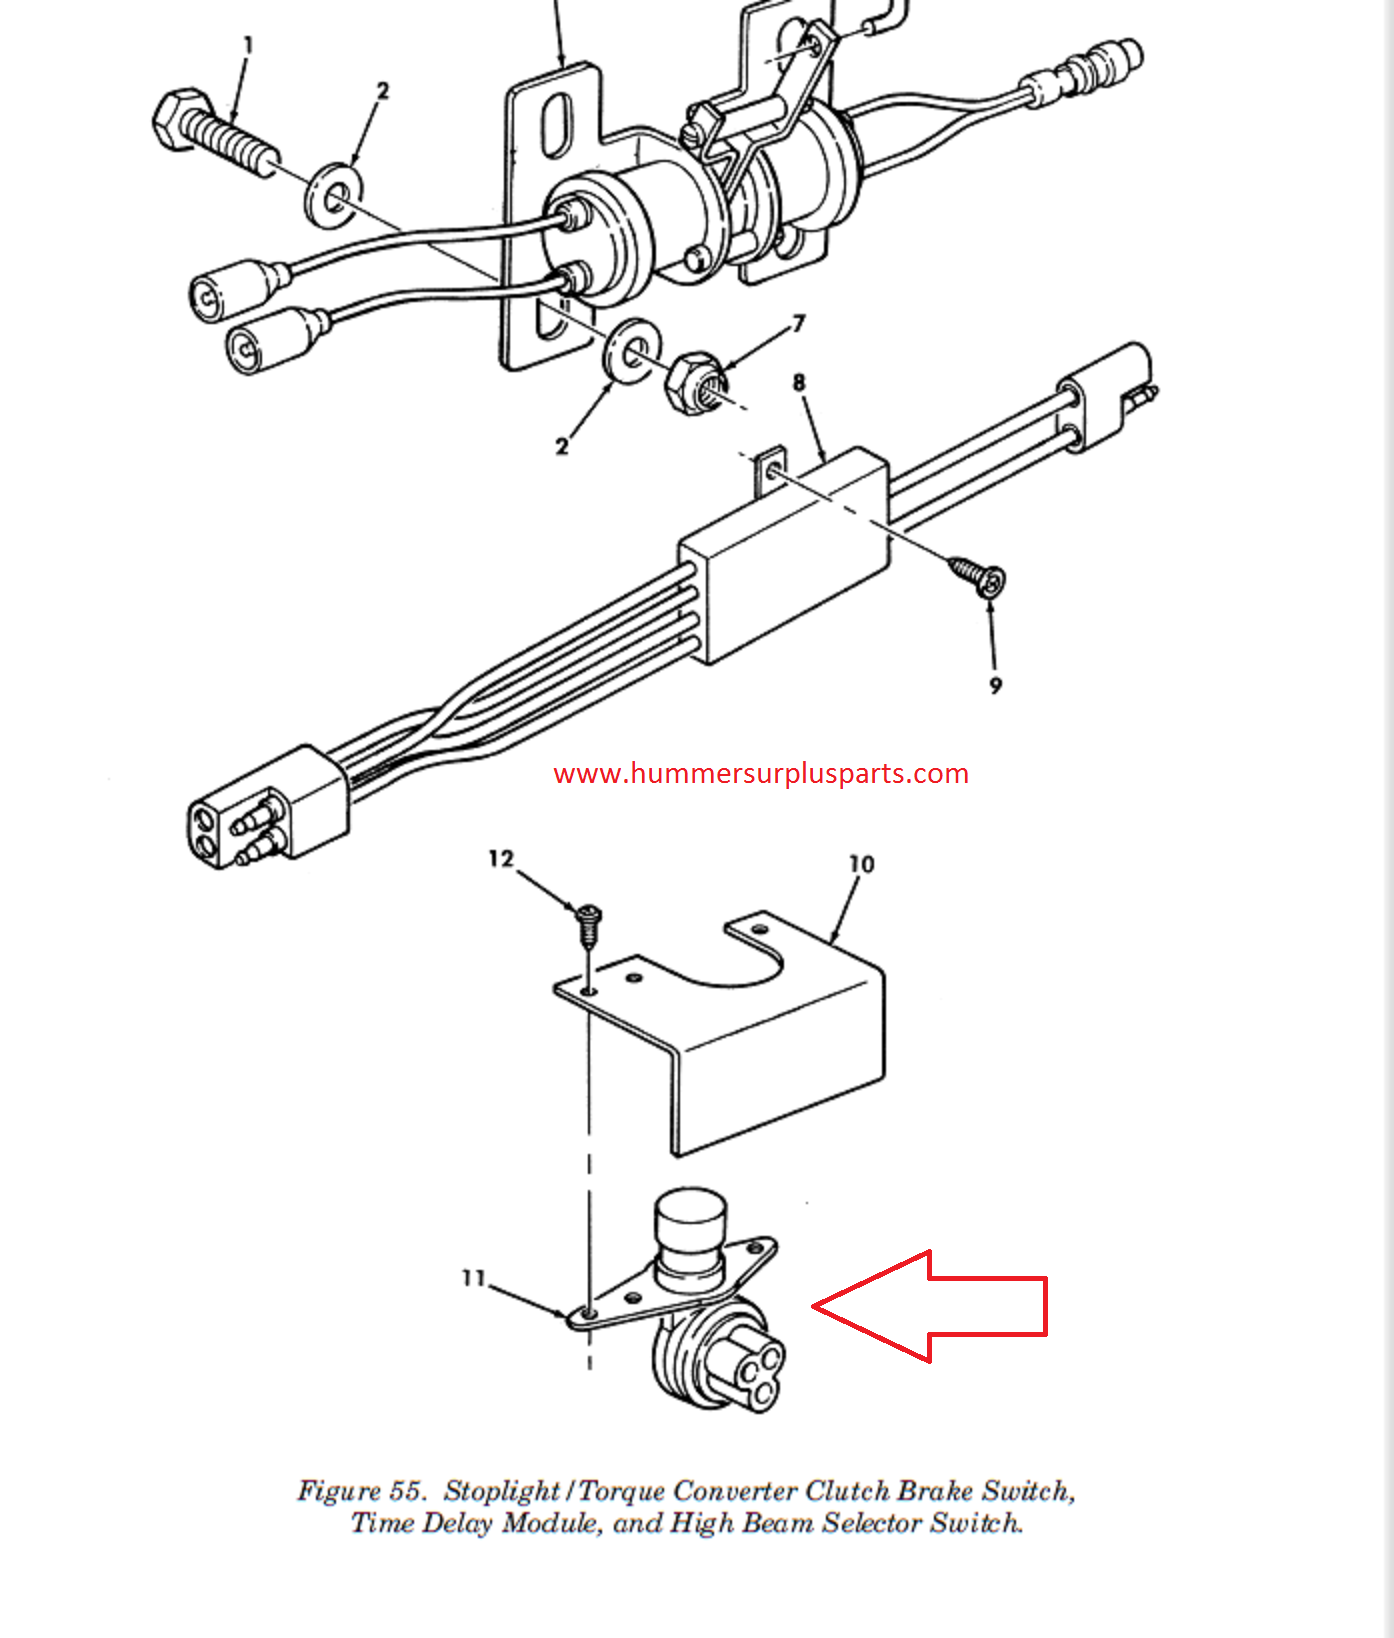 foot operated dimmer switch wiring diagram headlight #3 1999 jeep headlight switch wiring foot operated dimmer switch wiring diagram headlight #3